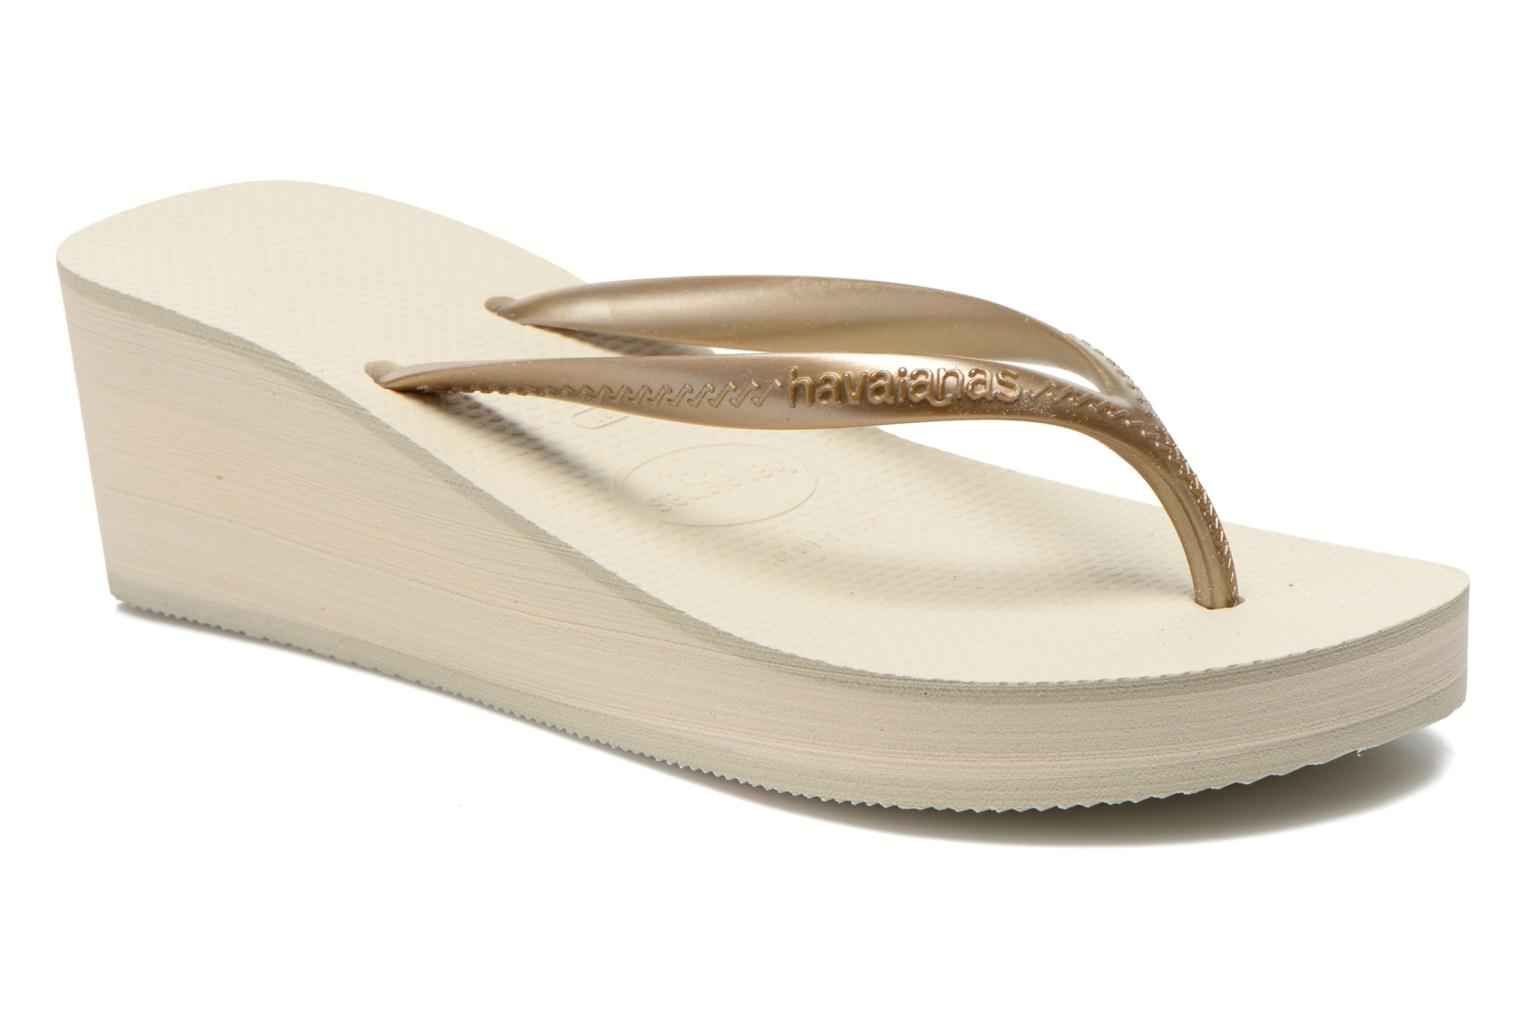 Havaianas - Damen - High Fashion - Zehensandalen - gold/bronze cmKHOq2c